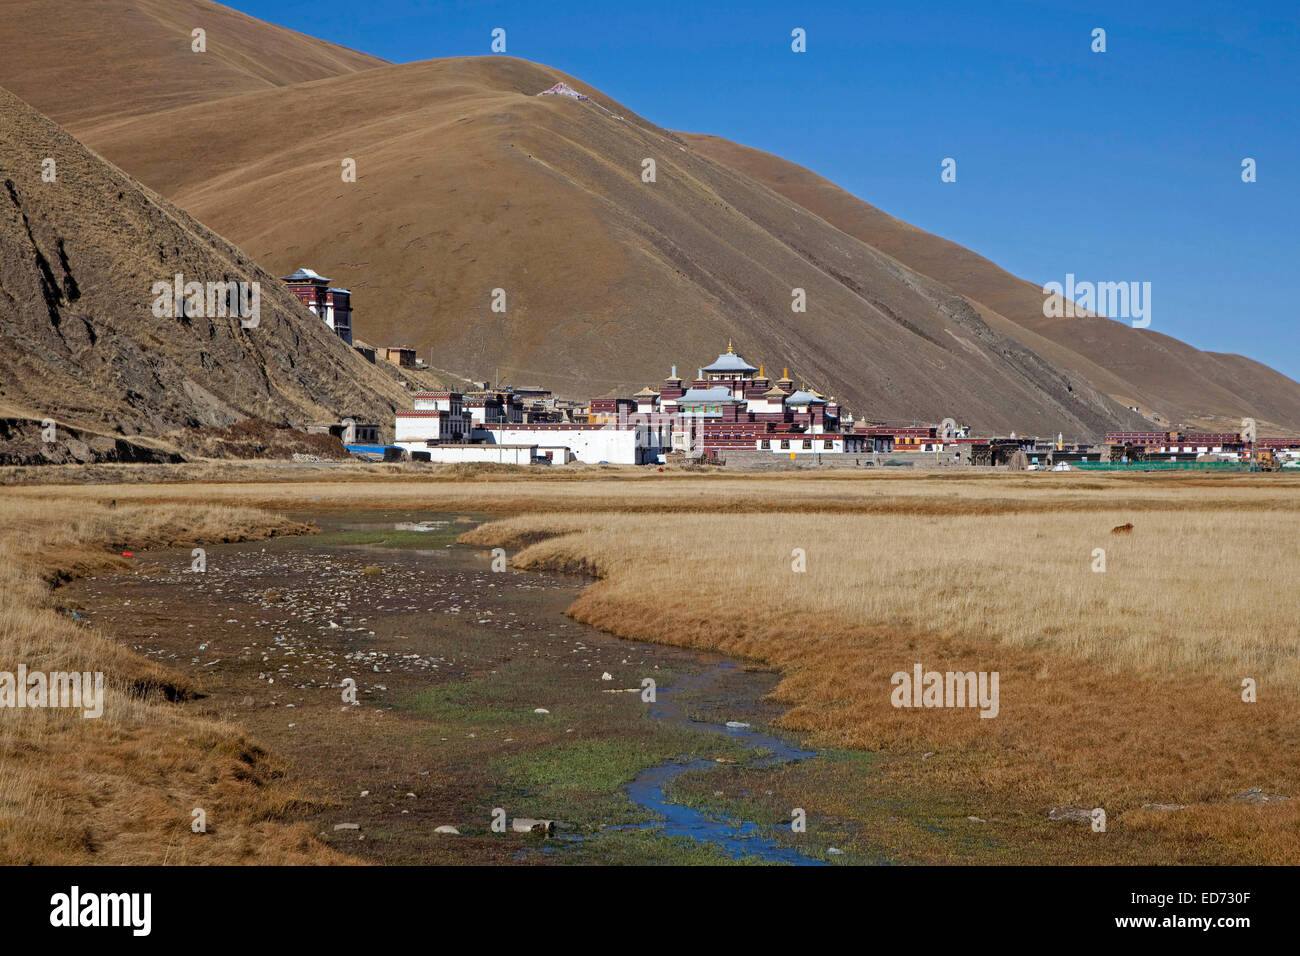 The Tibetan monastery Sershu Dzong in the village Sershu / Serxu, Sichuan Province, China - Stock Image